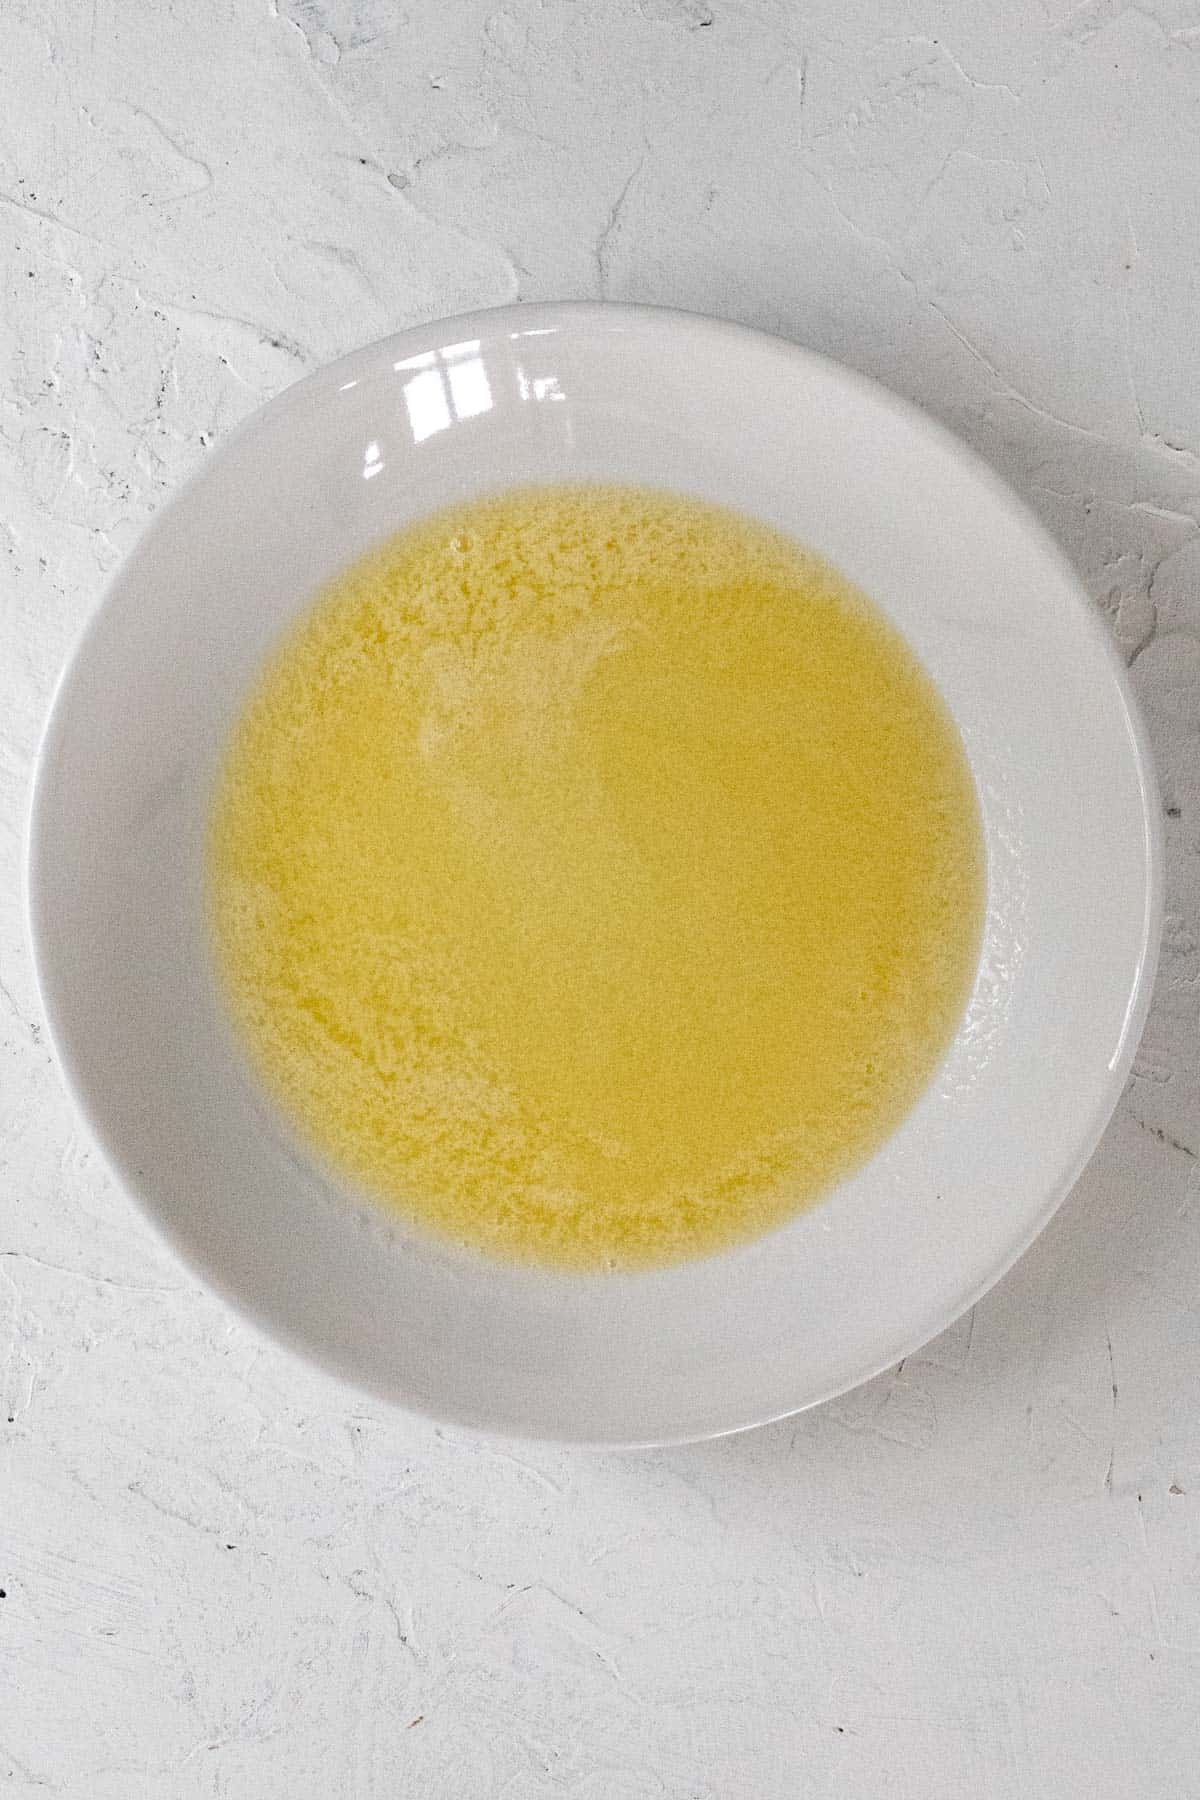 Melted butter in a white bowl.